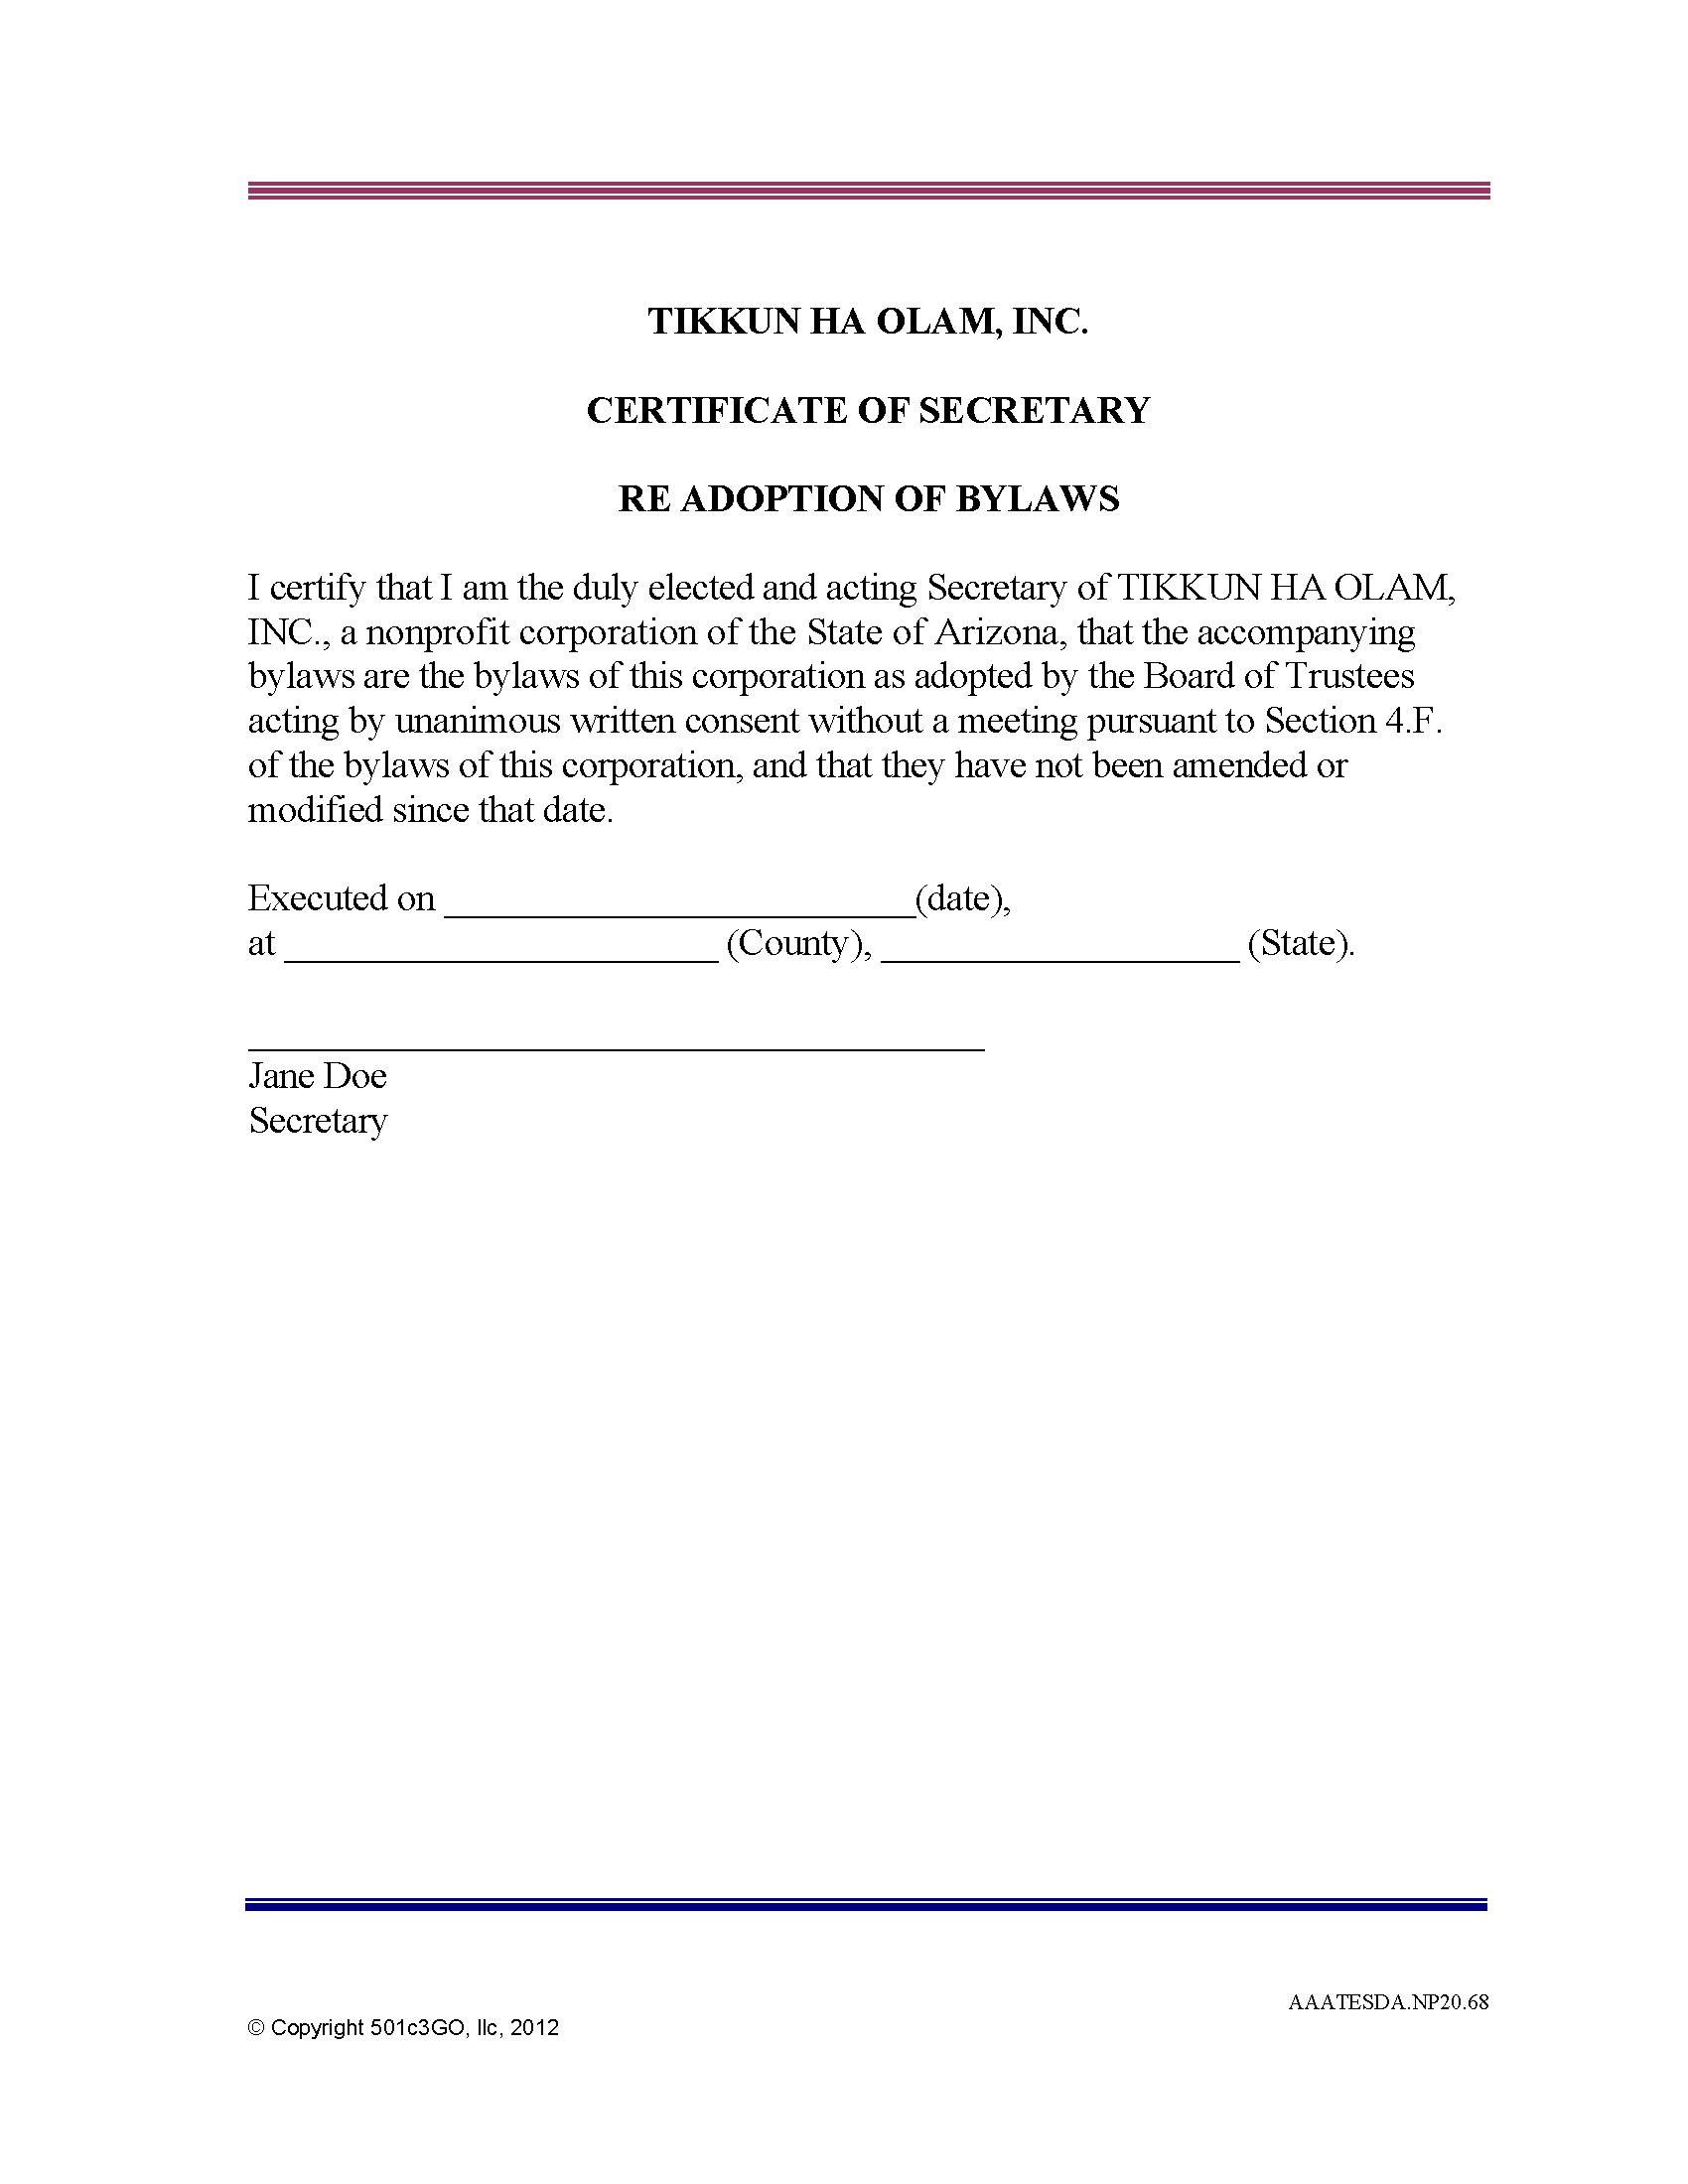 Certificate Of Secretary Re Adoption Of Bylaws  Cgo With Corporate Secretary Certificate Template